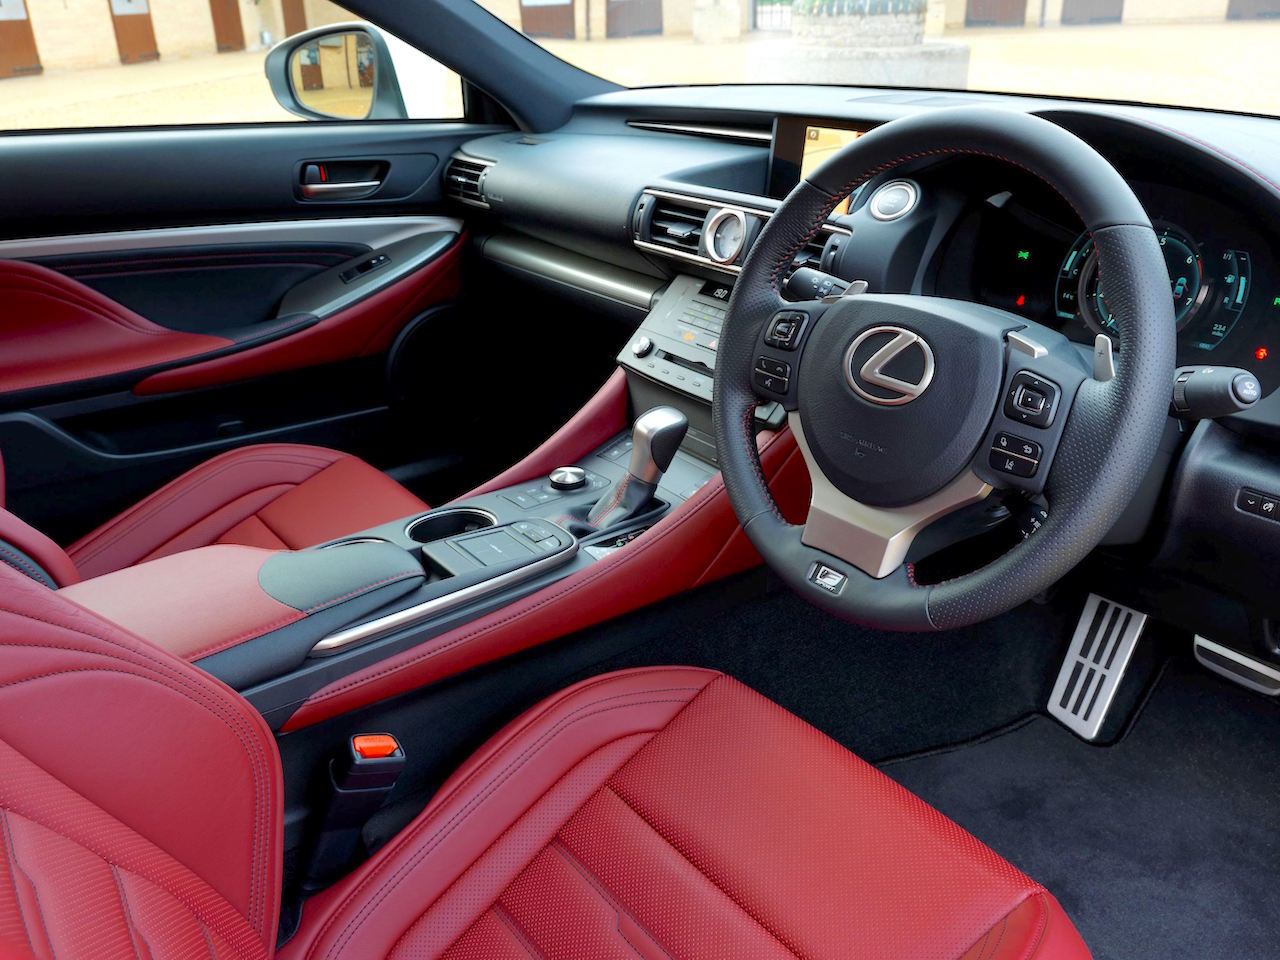 Lexus RC 200t front interior copy